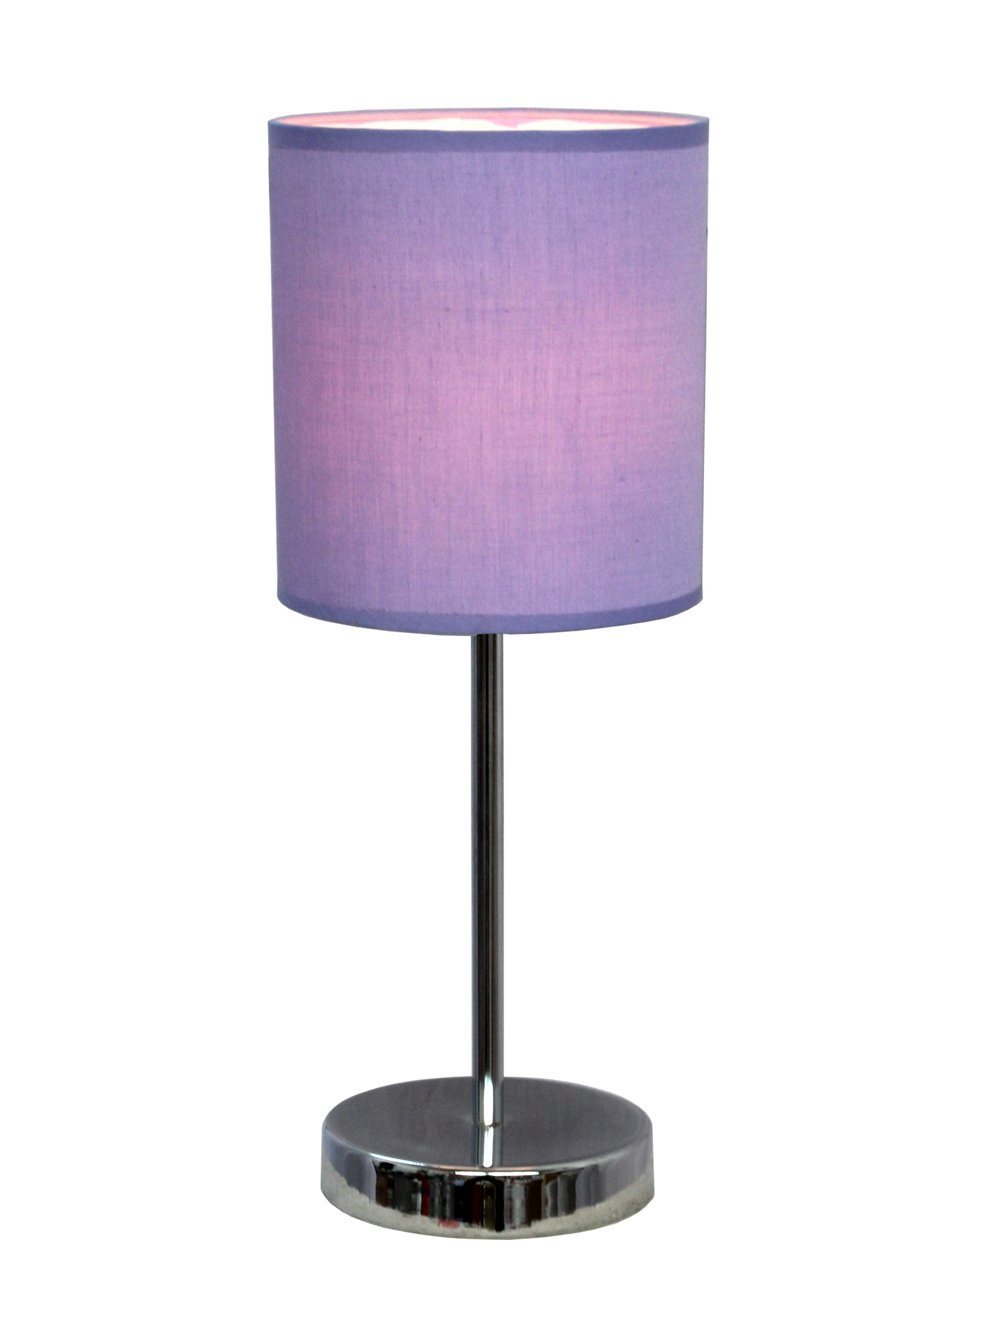 Purple Bedroom Lamps Simple Designs Lt2007 Prp Chrome Mini Basic Table Lamp With Fabric